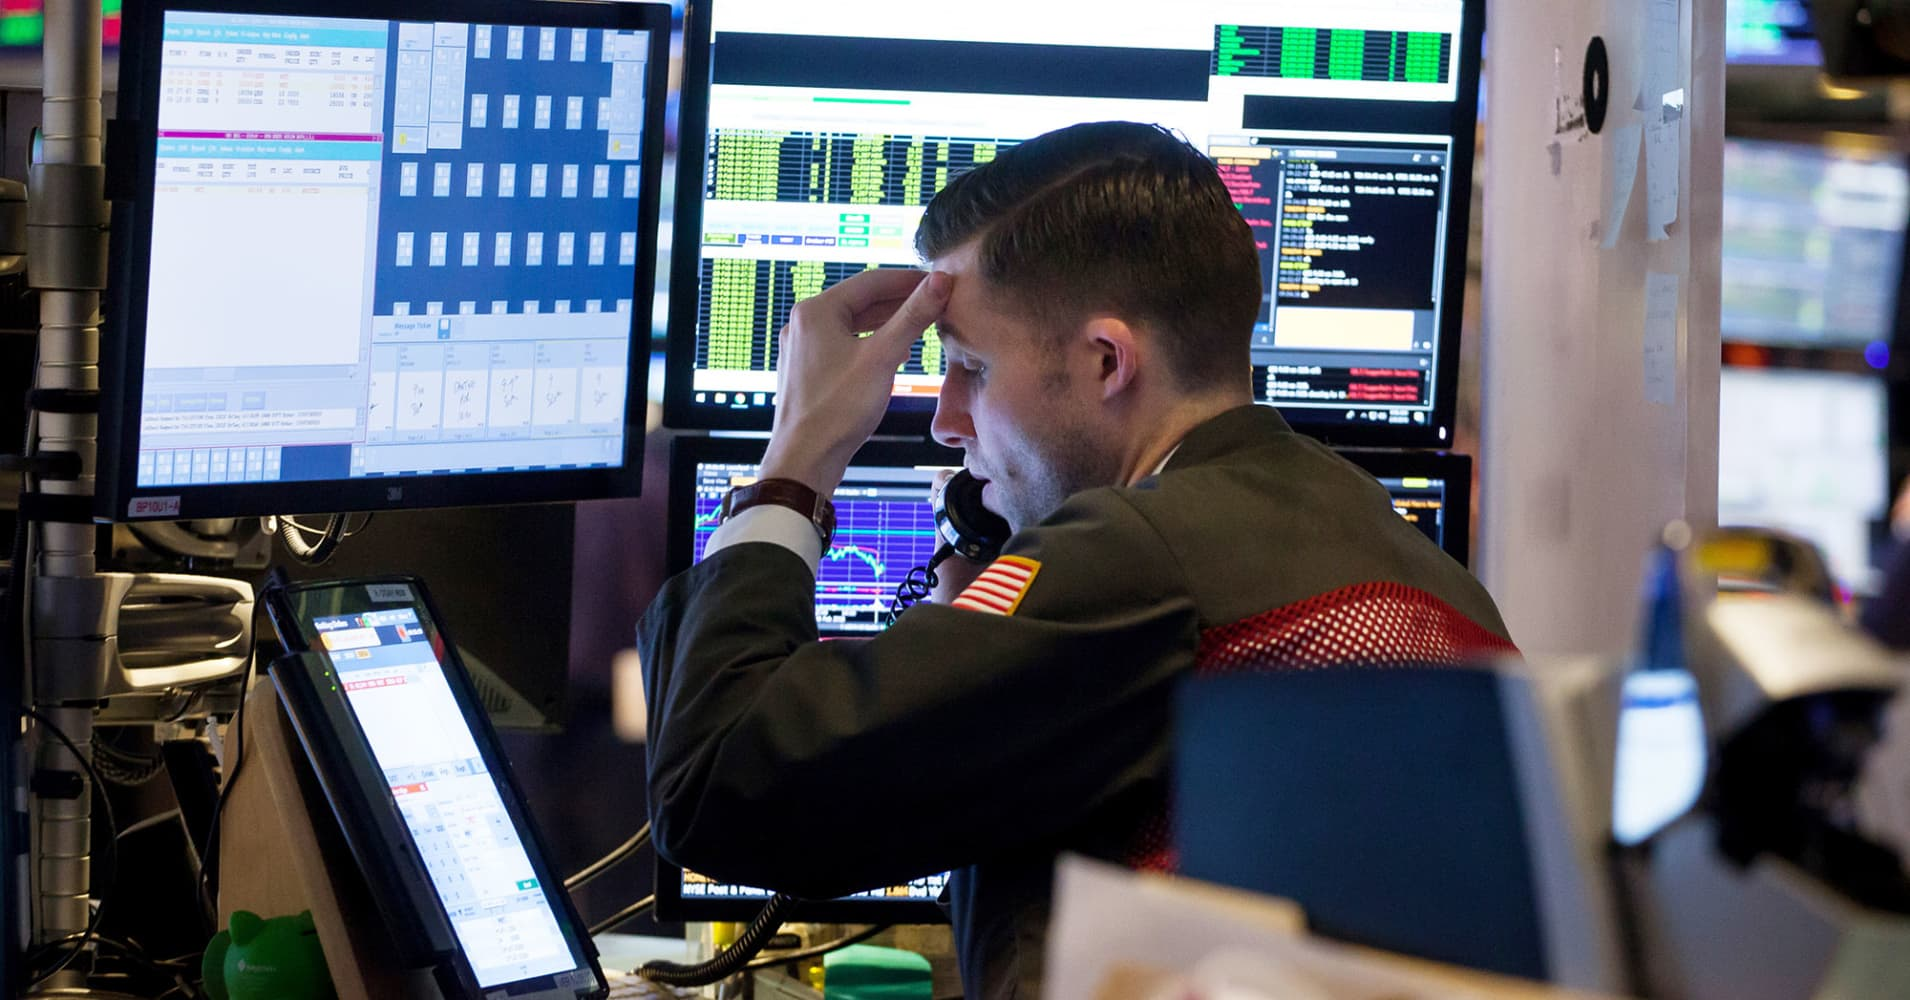 Major global markets are already in a bear market or getting close, stoking fears of slowing growth